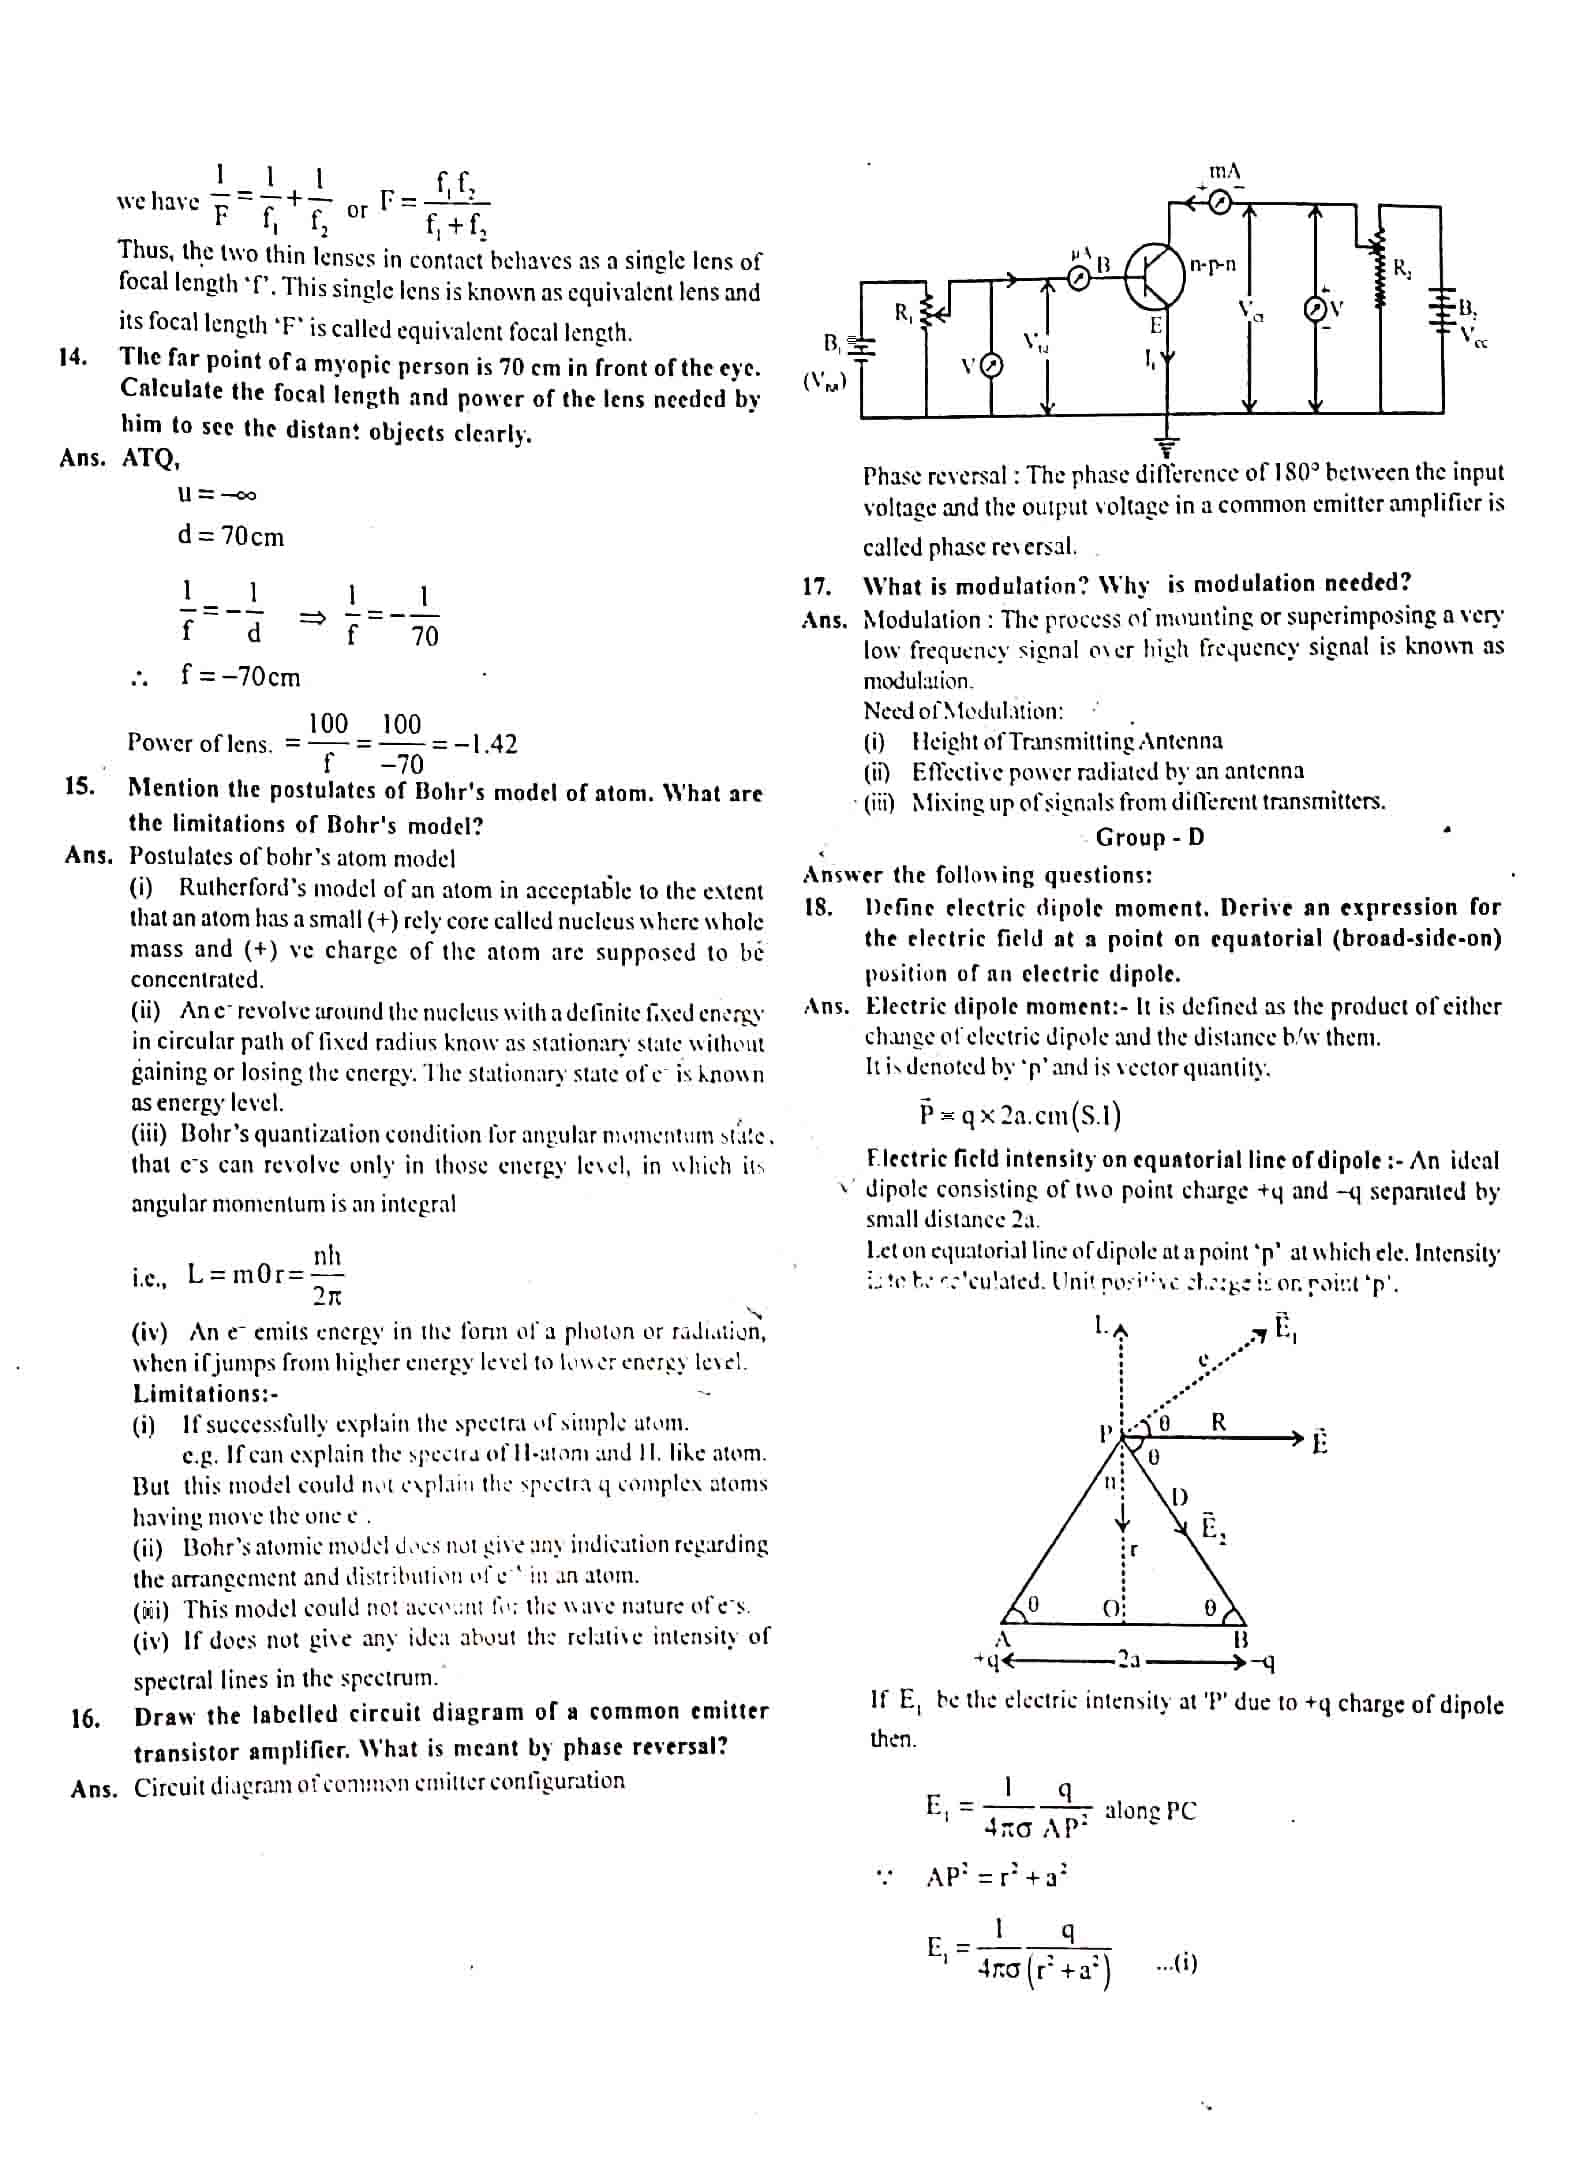 JAC Class 12 Physics 2018 Question Paper 04